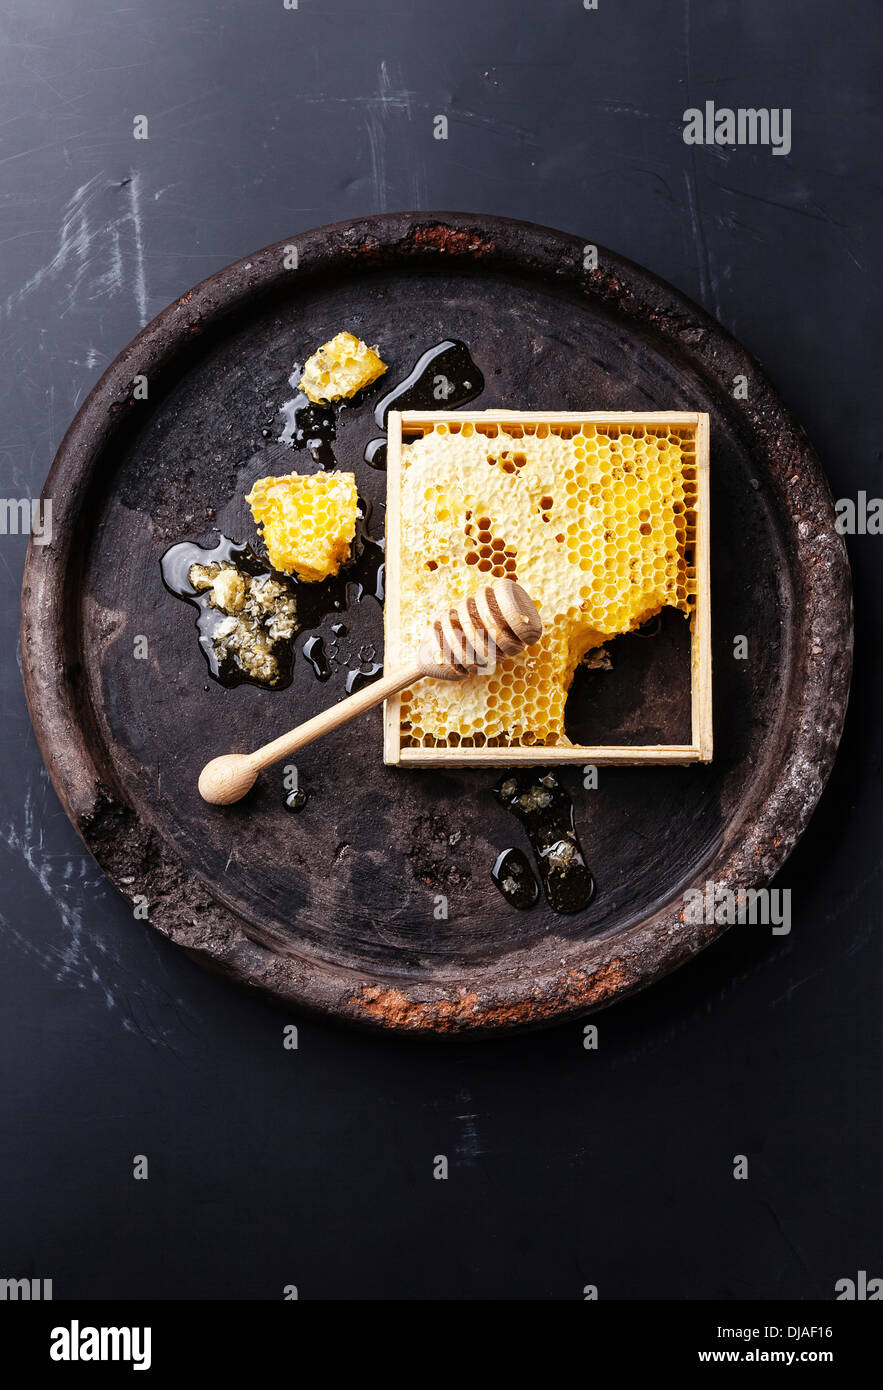 Honeycomb with wooden honey dipper on black textured background - Stock Image